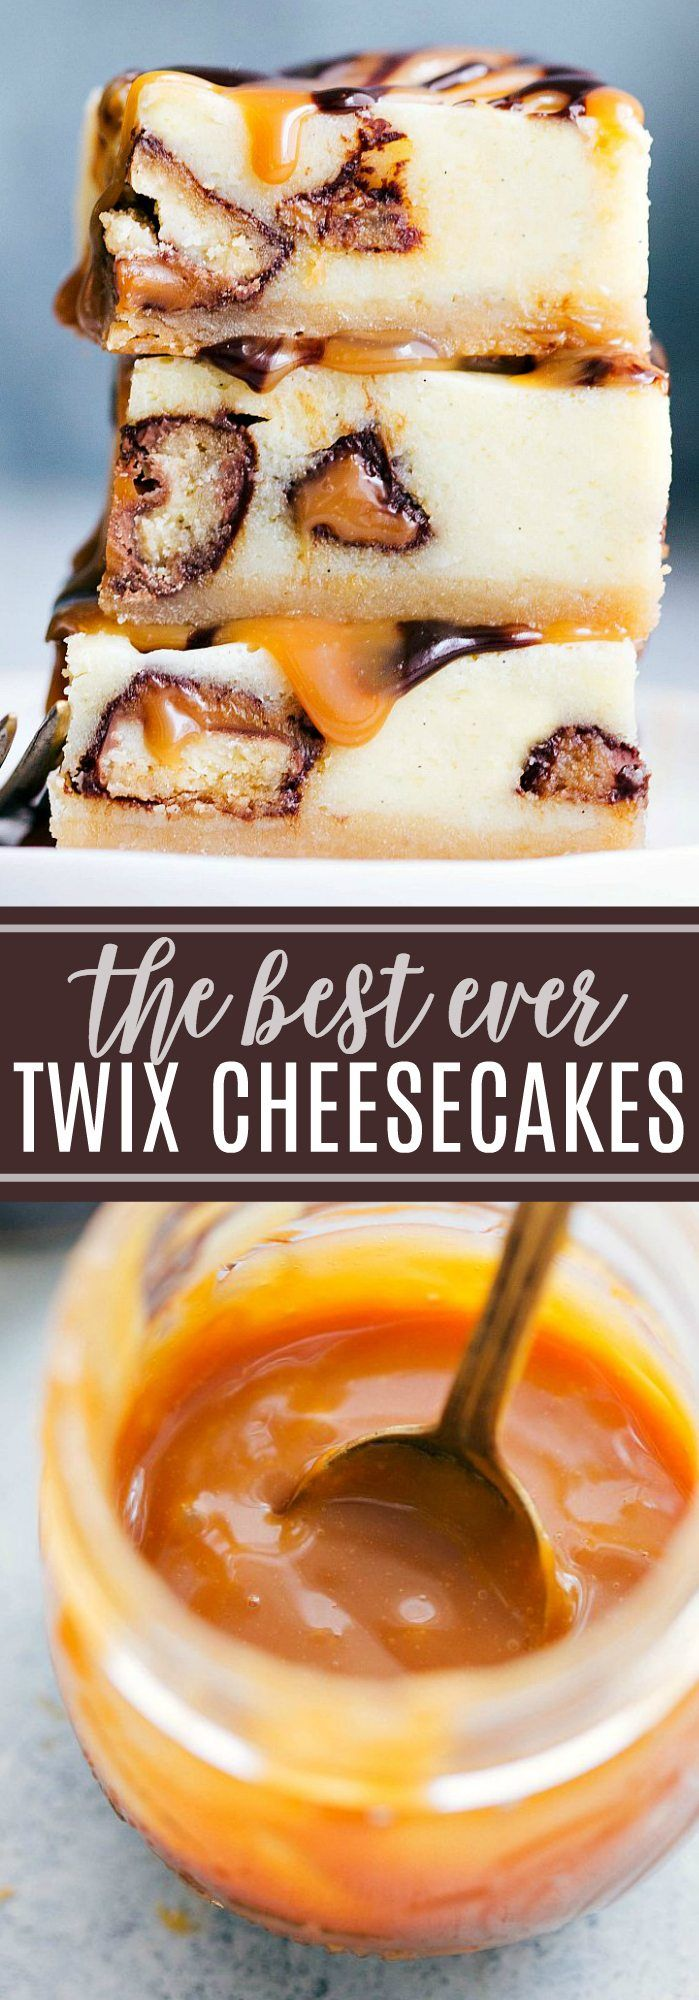 The BEST EVER Twix Cheesecake Bars with an easy (2-ingredient) caramel sauce and chocolate ganache. Everyone goes crazy over this dessert! chelseasmessyapron.com #twix #cheesecake #bars #caramel #chocolate #sauce #ganache #shortbread #crust #easy #dessert #desserts #kidfriendly #cheesecakes